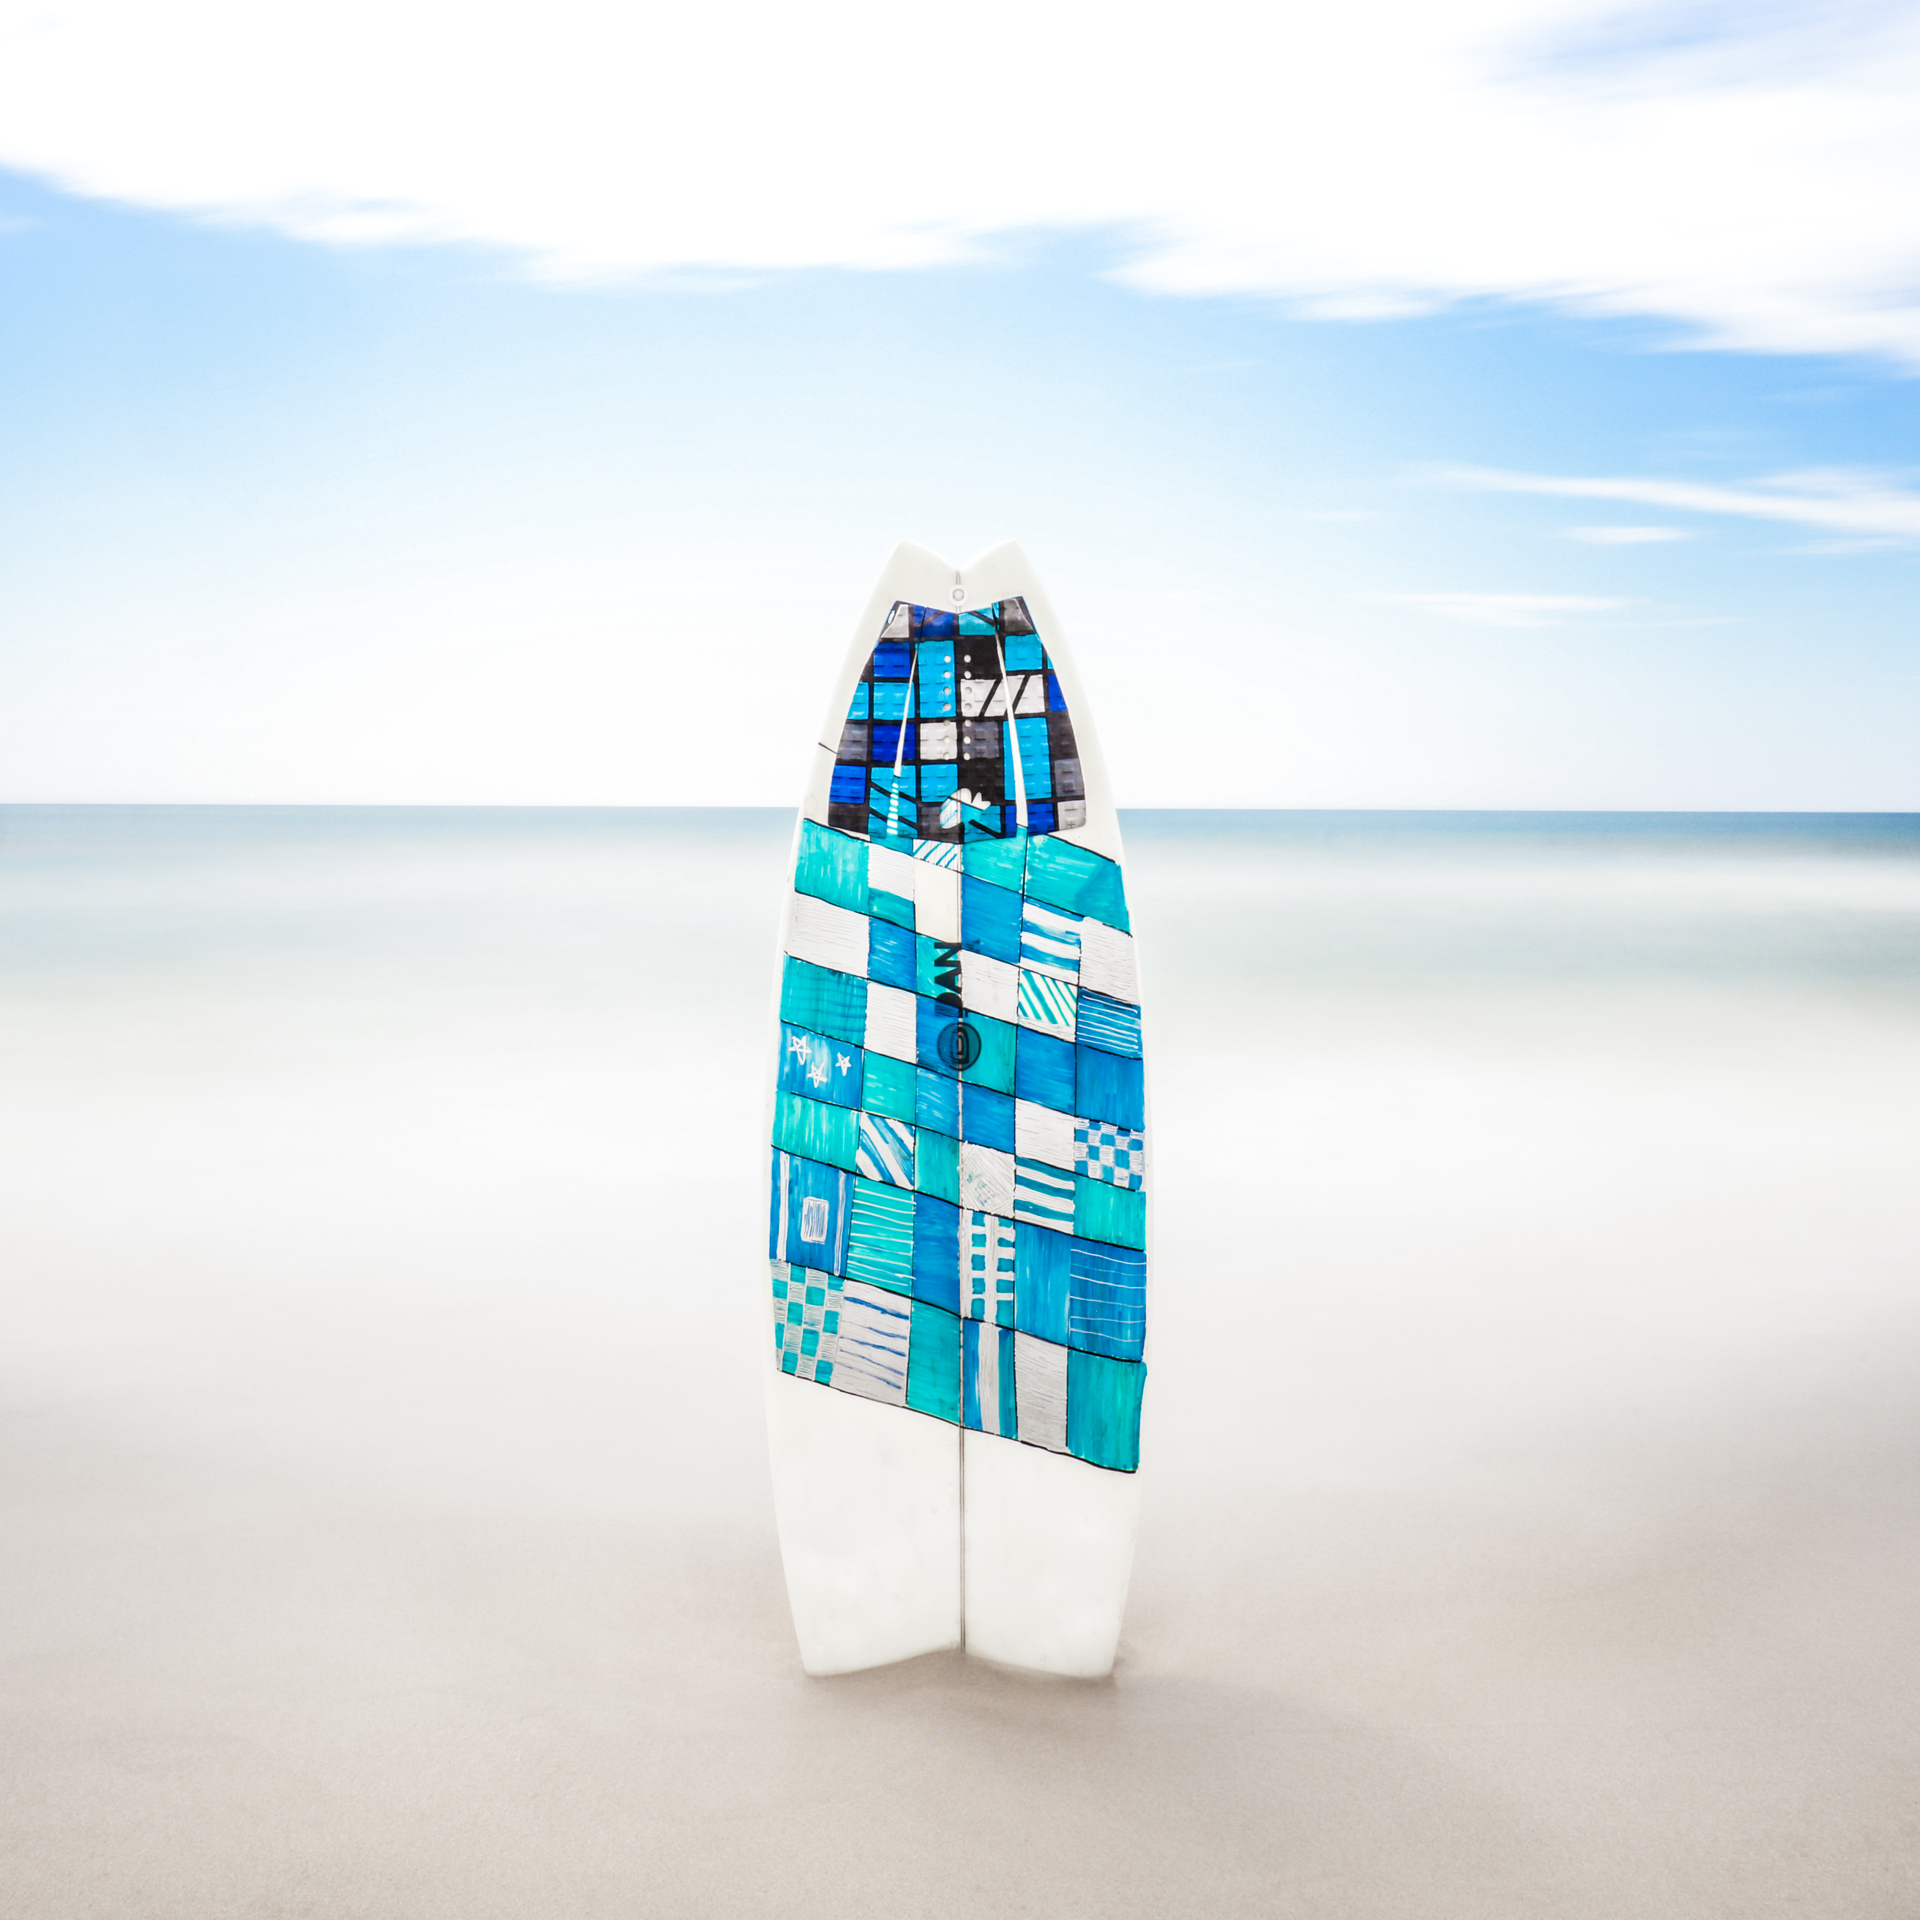 DT Surfboard at Napeague Lane by Keith Ramsdell